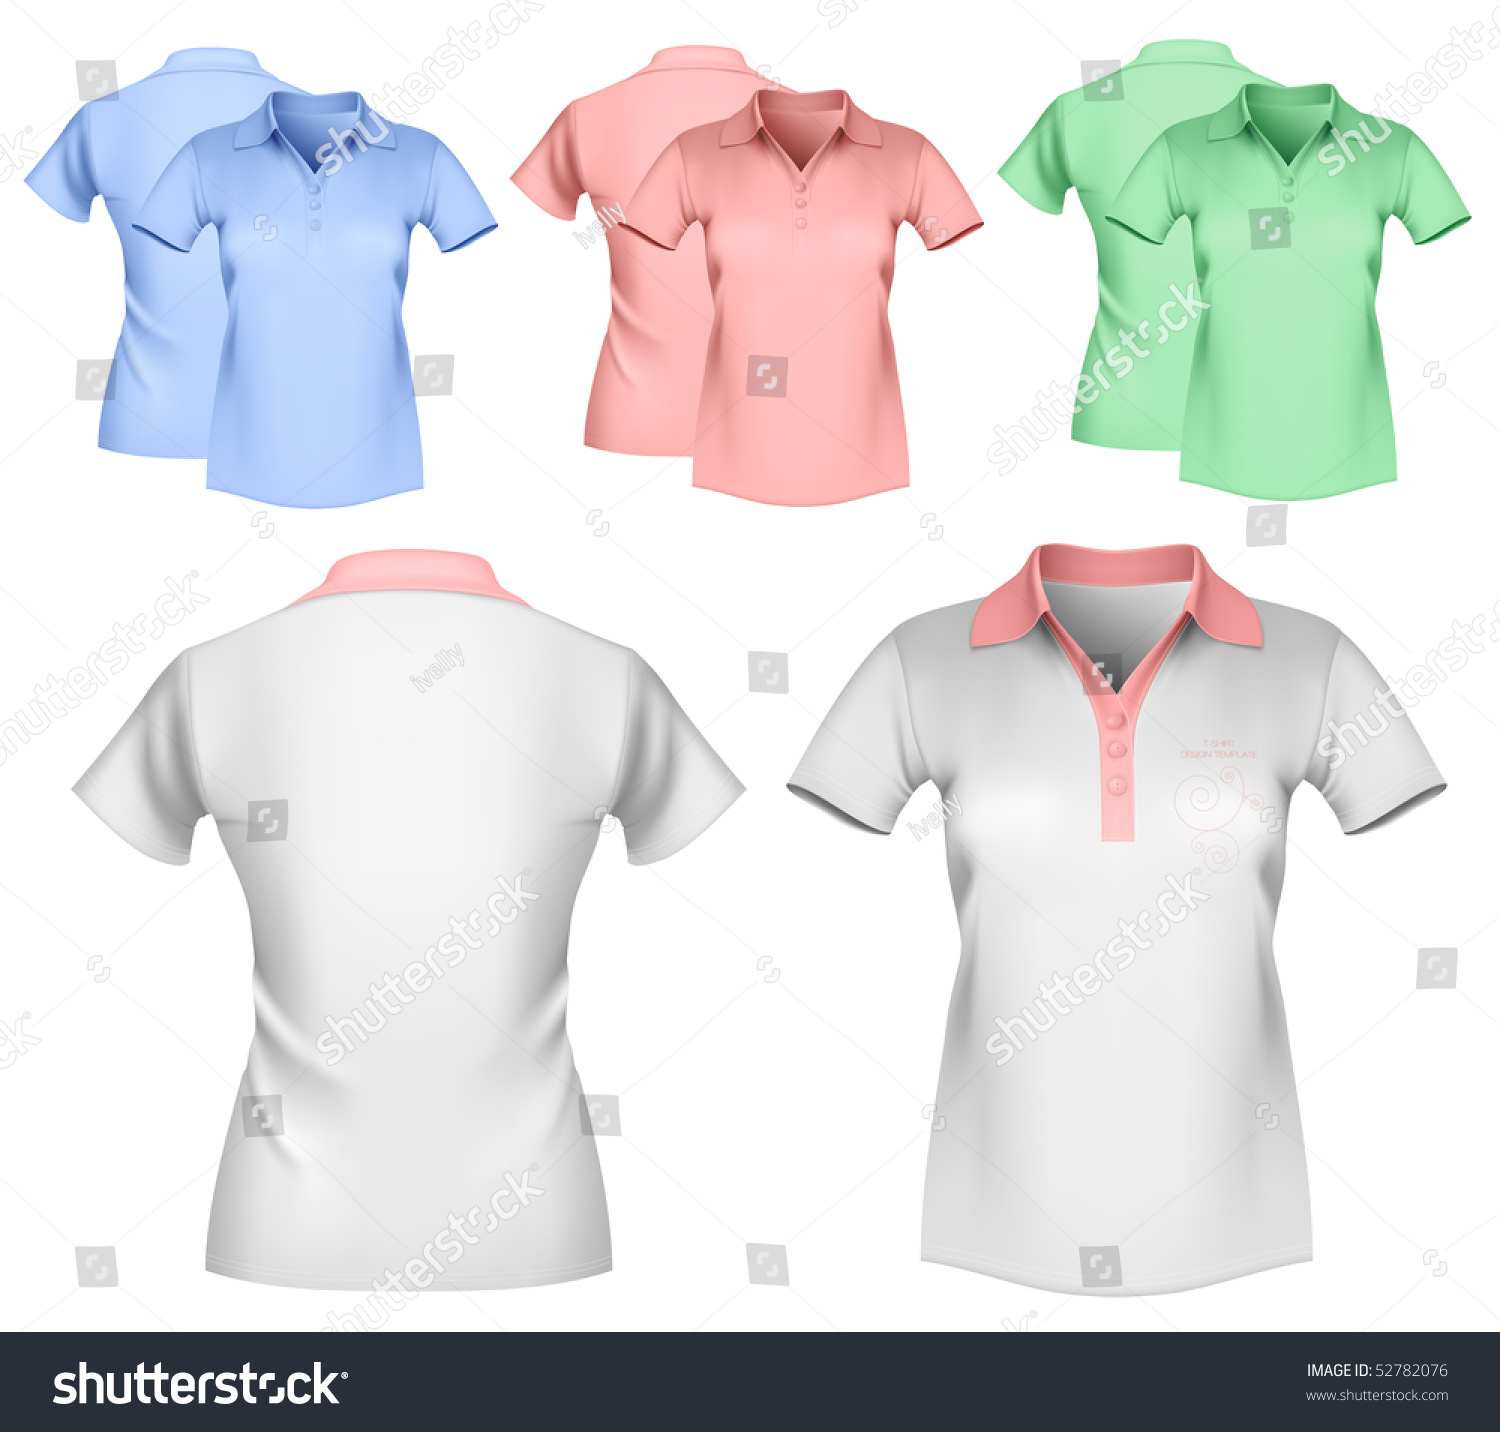 Vector illustration woman color white polo stock vector for Polo shirt design template